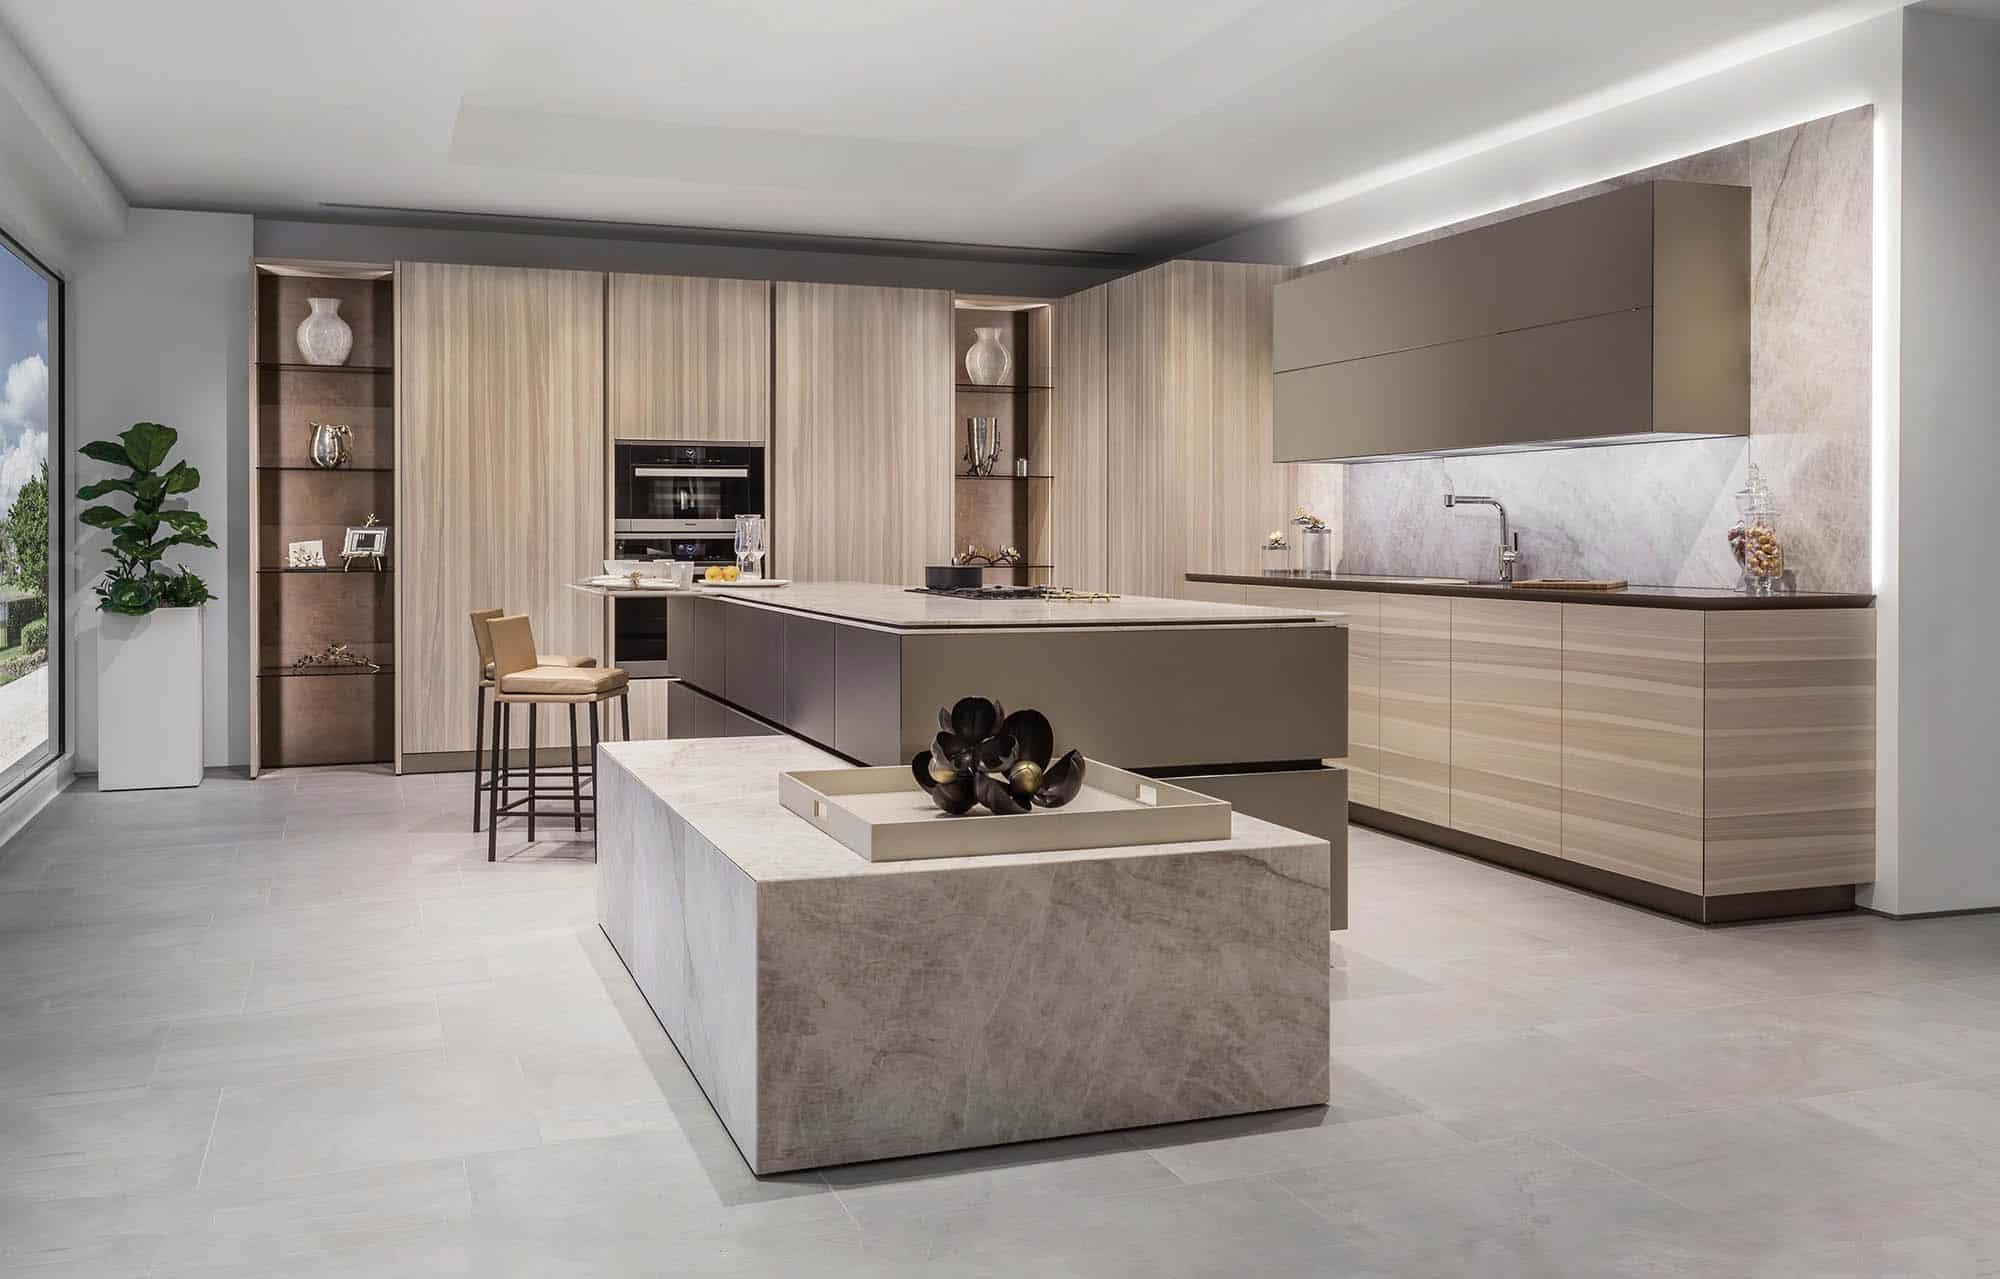 frameless and handleless unique cabinetry by eggersmann in a kitchen featuring exotic wood finishes and integrated appliances